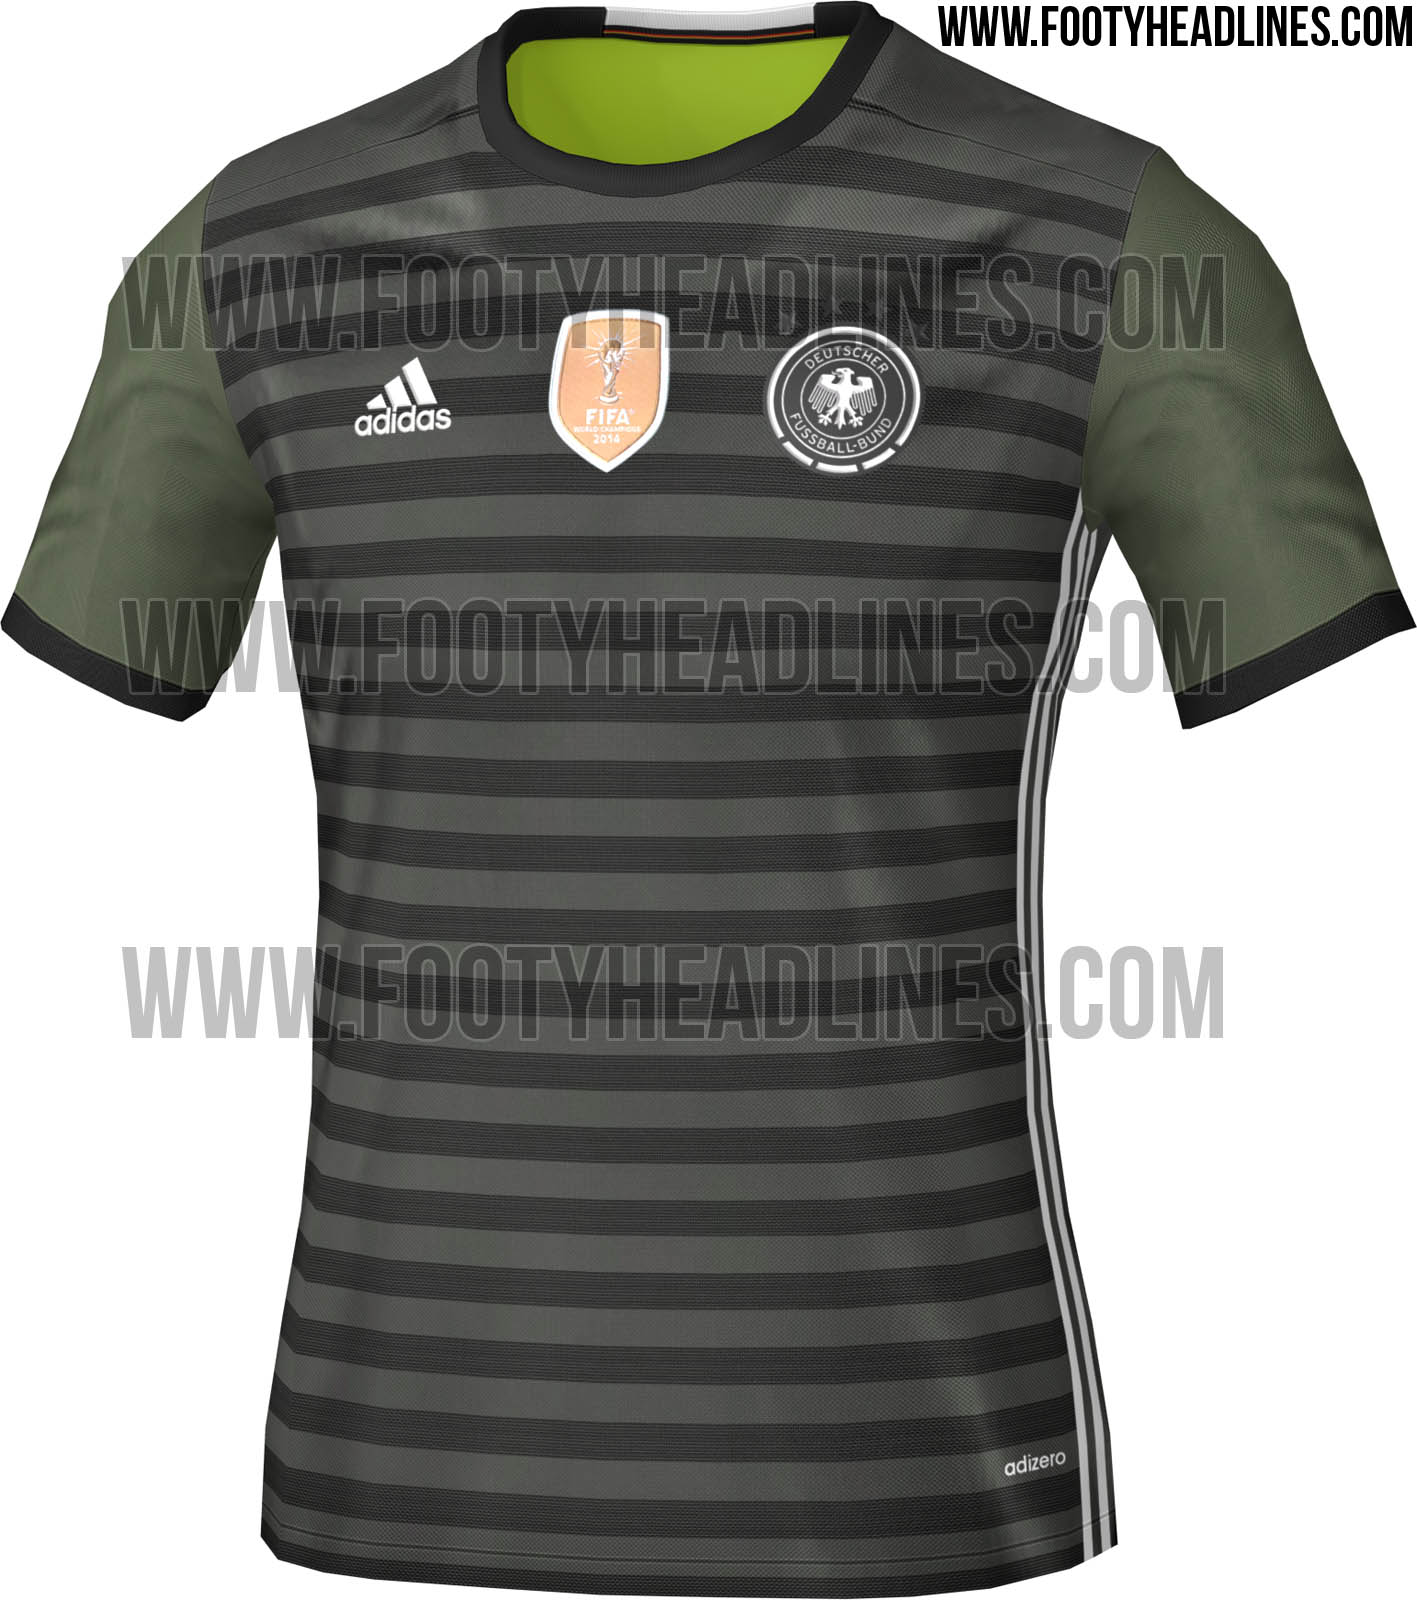 adidas-germany-euro-2016-away-kit%2B%25282%2529.jpg